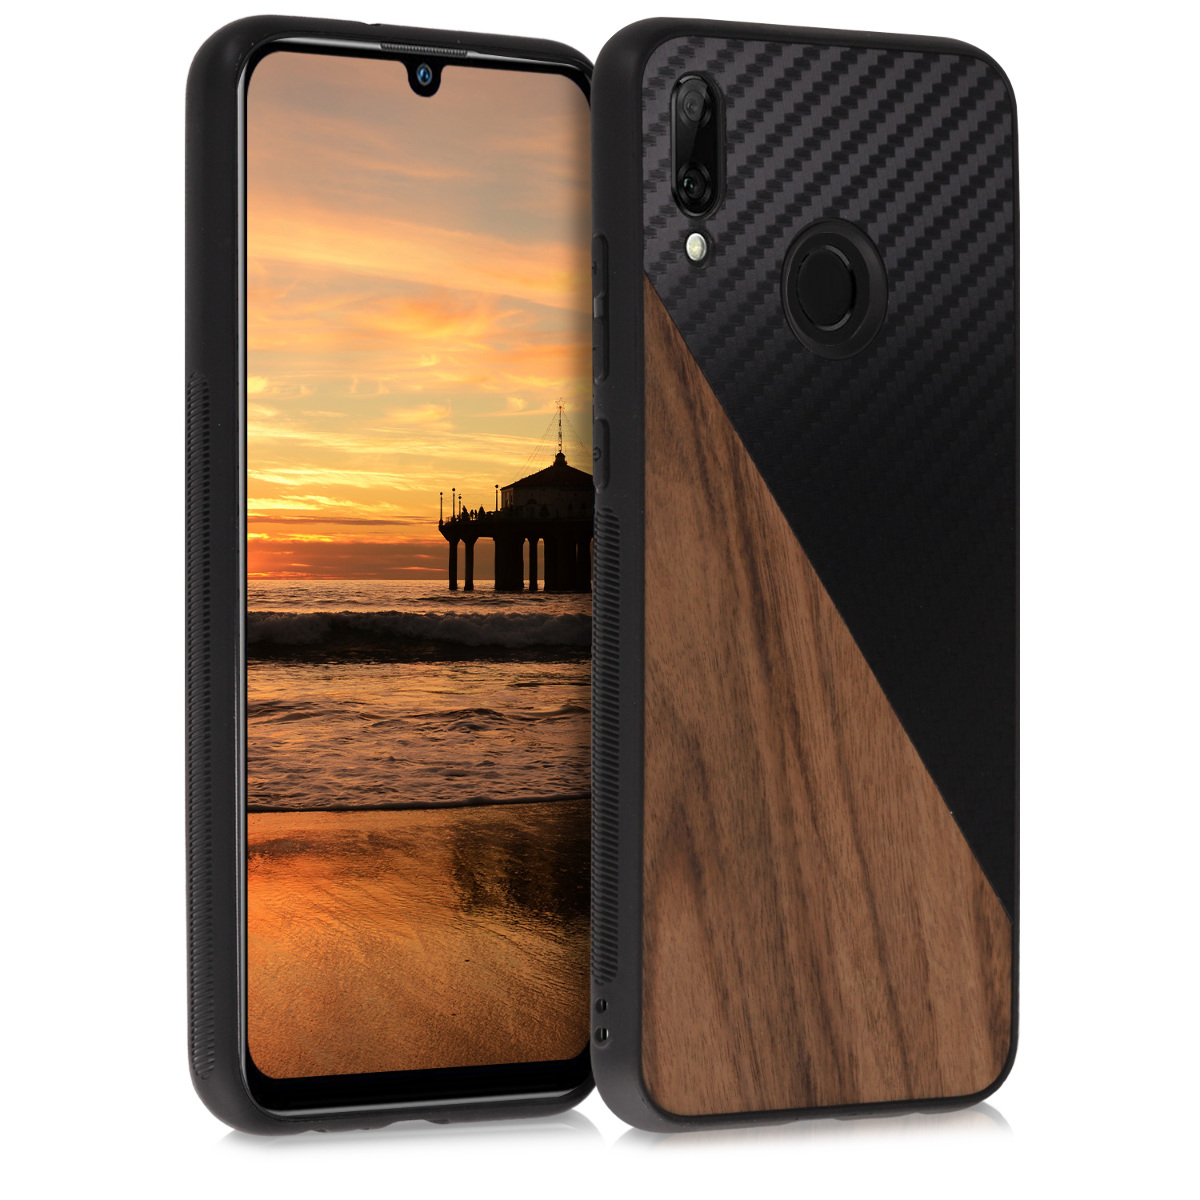 KW Σκλήρη Θήκη Huawei P Smart 2019 - TPU Bumper and Wood / Carbon Fiber - Dark Brown / Black (51031.01)